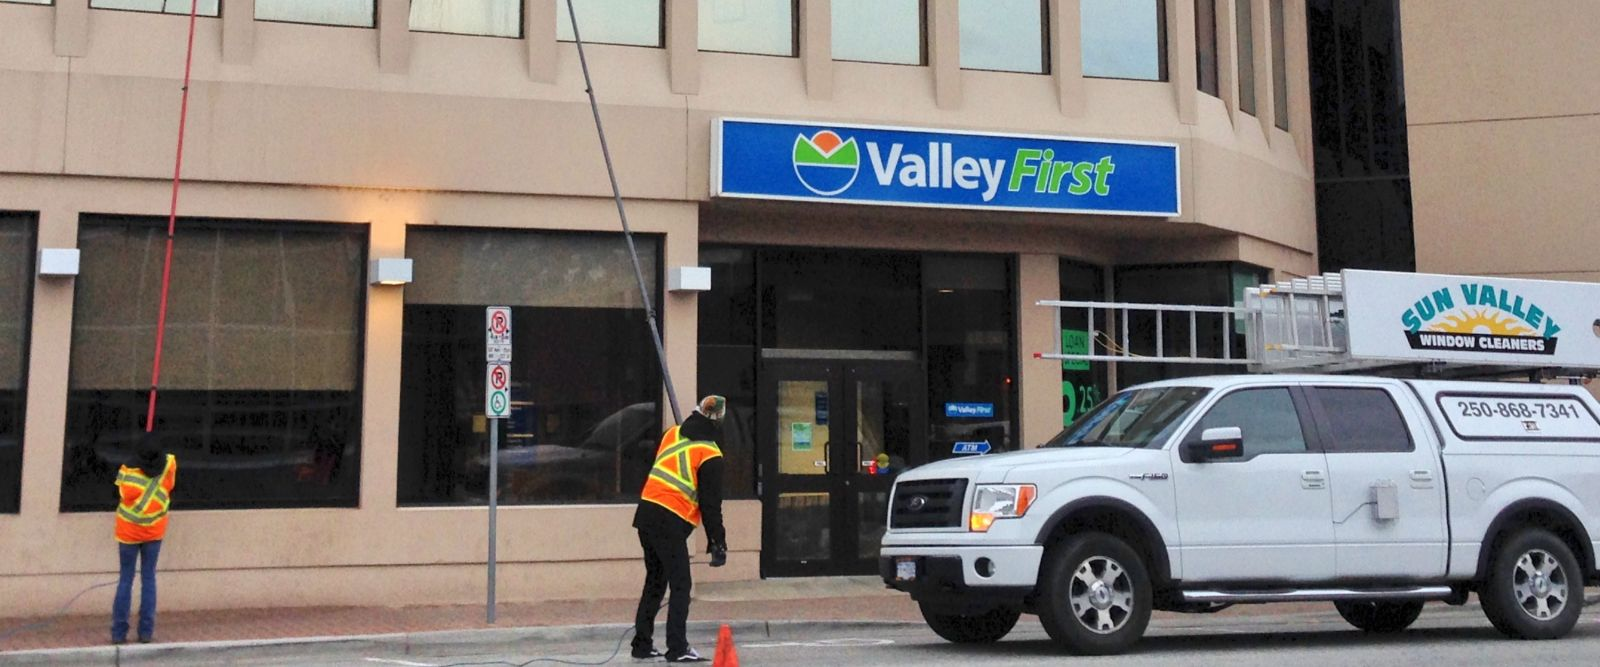 Waterfed pole commercial window cleaning in Penticton